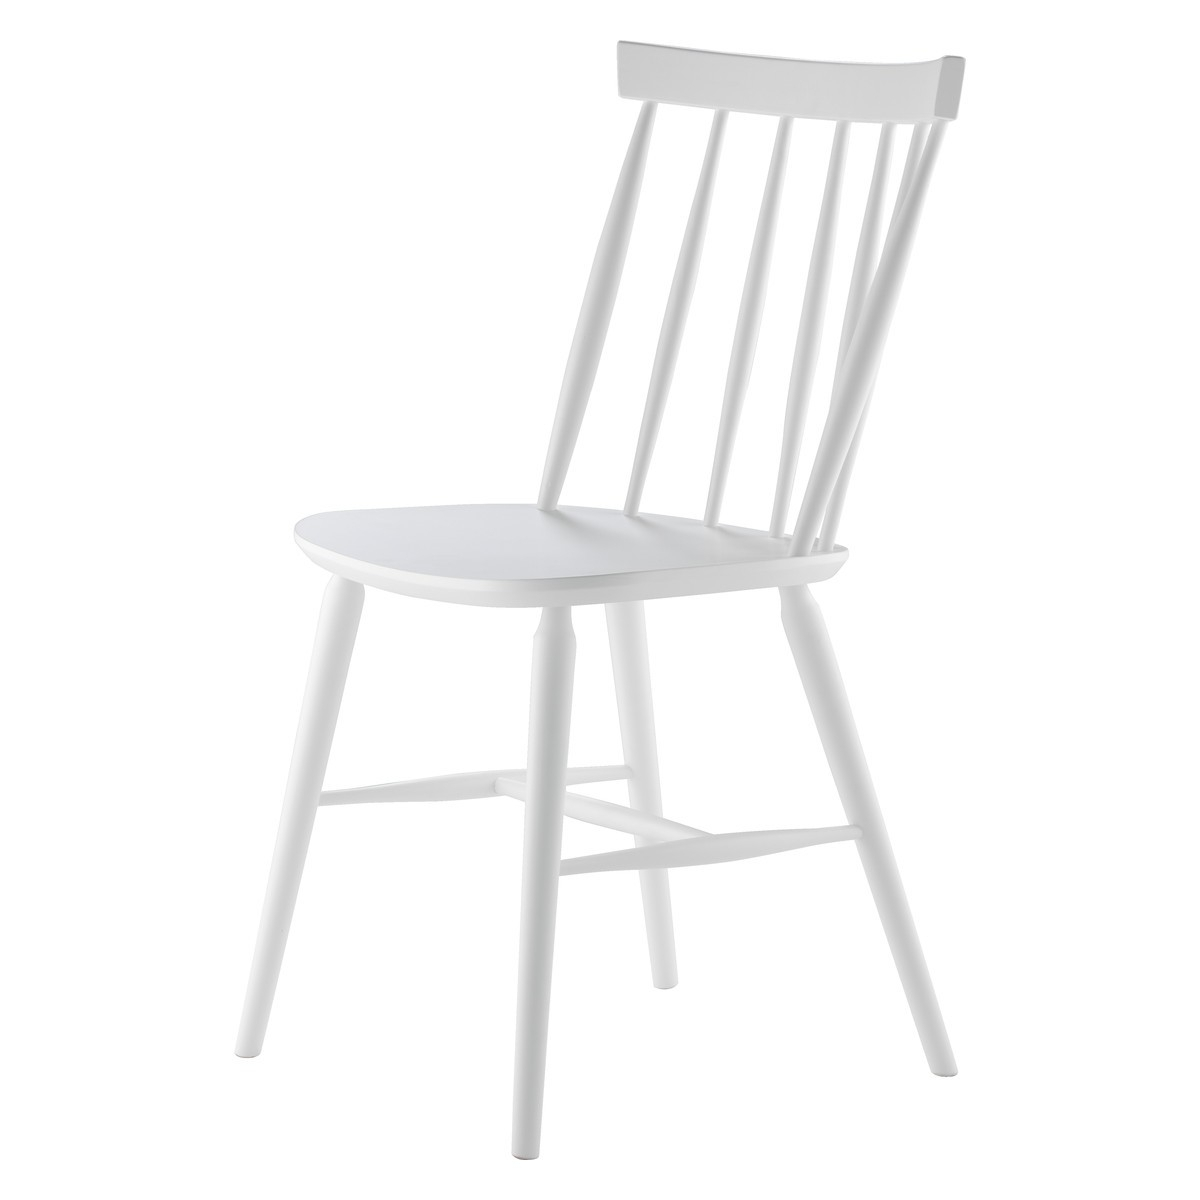 Buy Now At Habitat Uk With Regard To Well Known White Dining Chairs (Gallery 2 of 25)